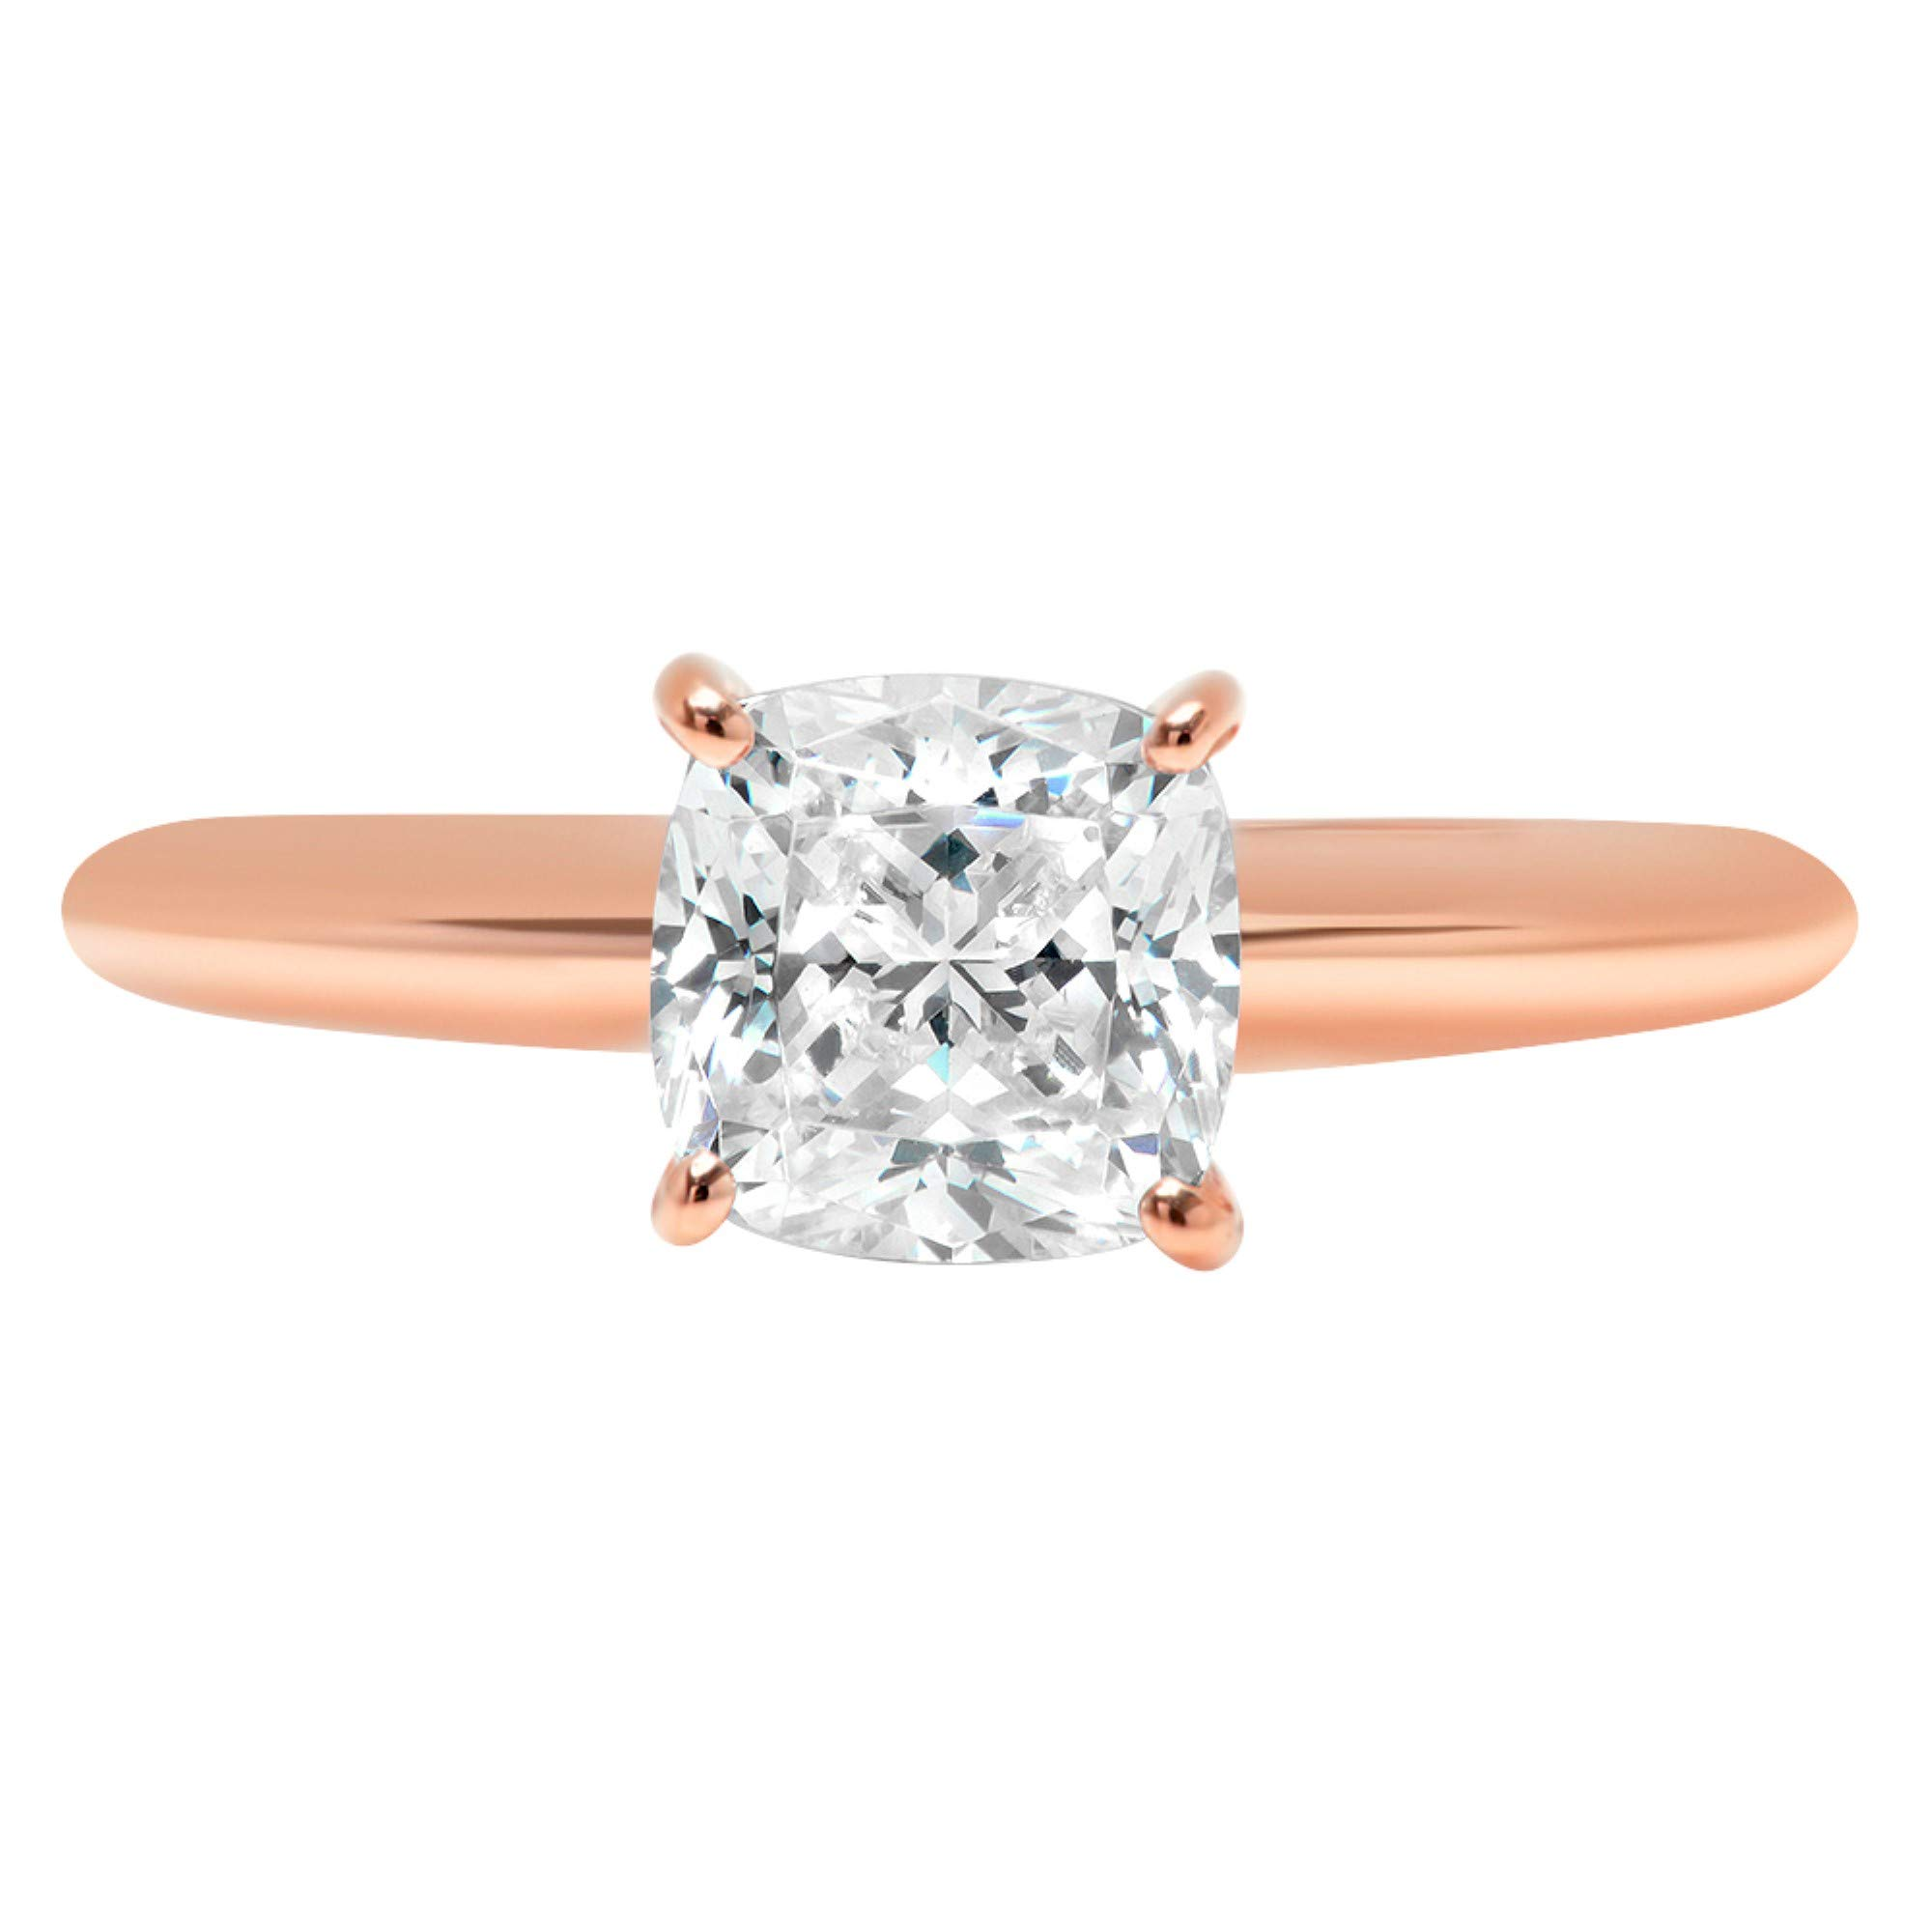 1.4ct Brilliant Cushion Cut Solitaire Highest Quality Lab Created White Sapphire Ideal VVS1 D 4-Prong Engagement Wedding Bridal Promise Anniversary Ring Solid Real 14k Rose Gold for Women